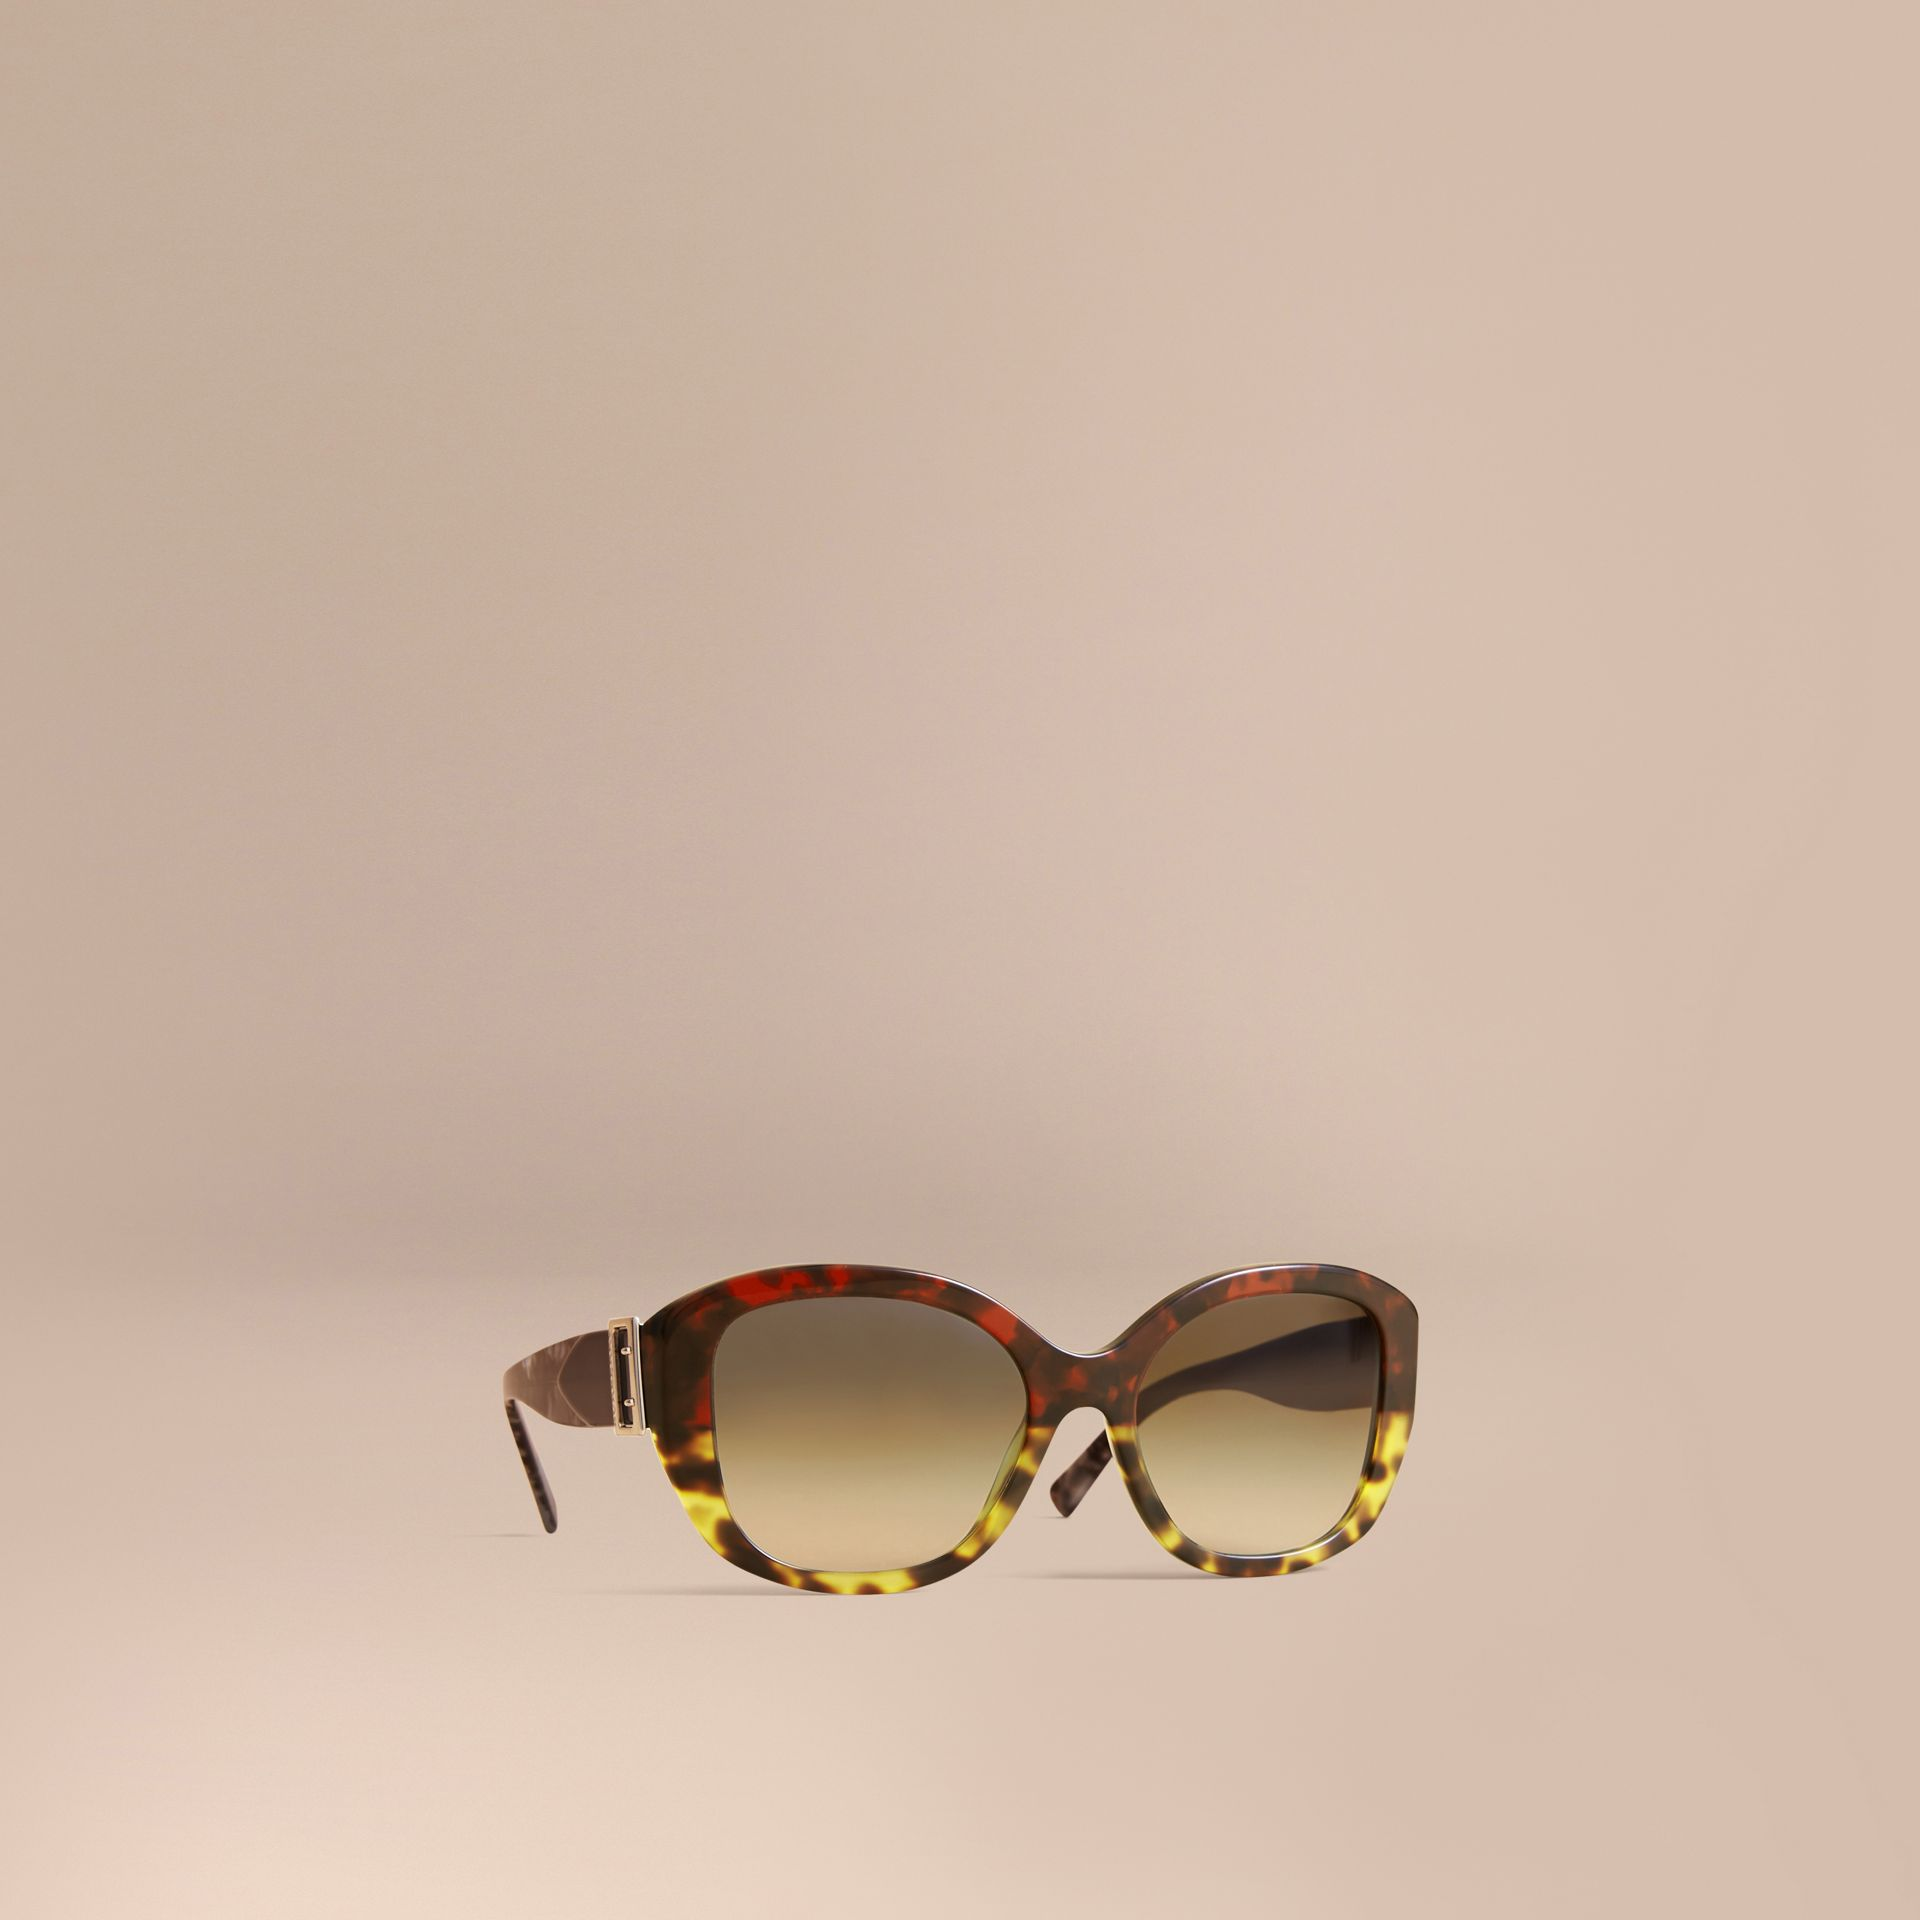 Buckle Detail Oversize Square Frame Sunglasses in Amber Yellow - Women | Burberry Australia - gallery image 1